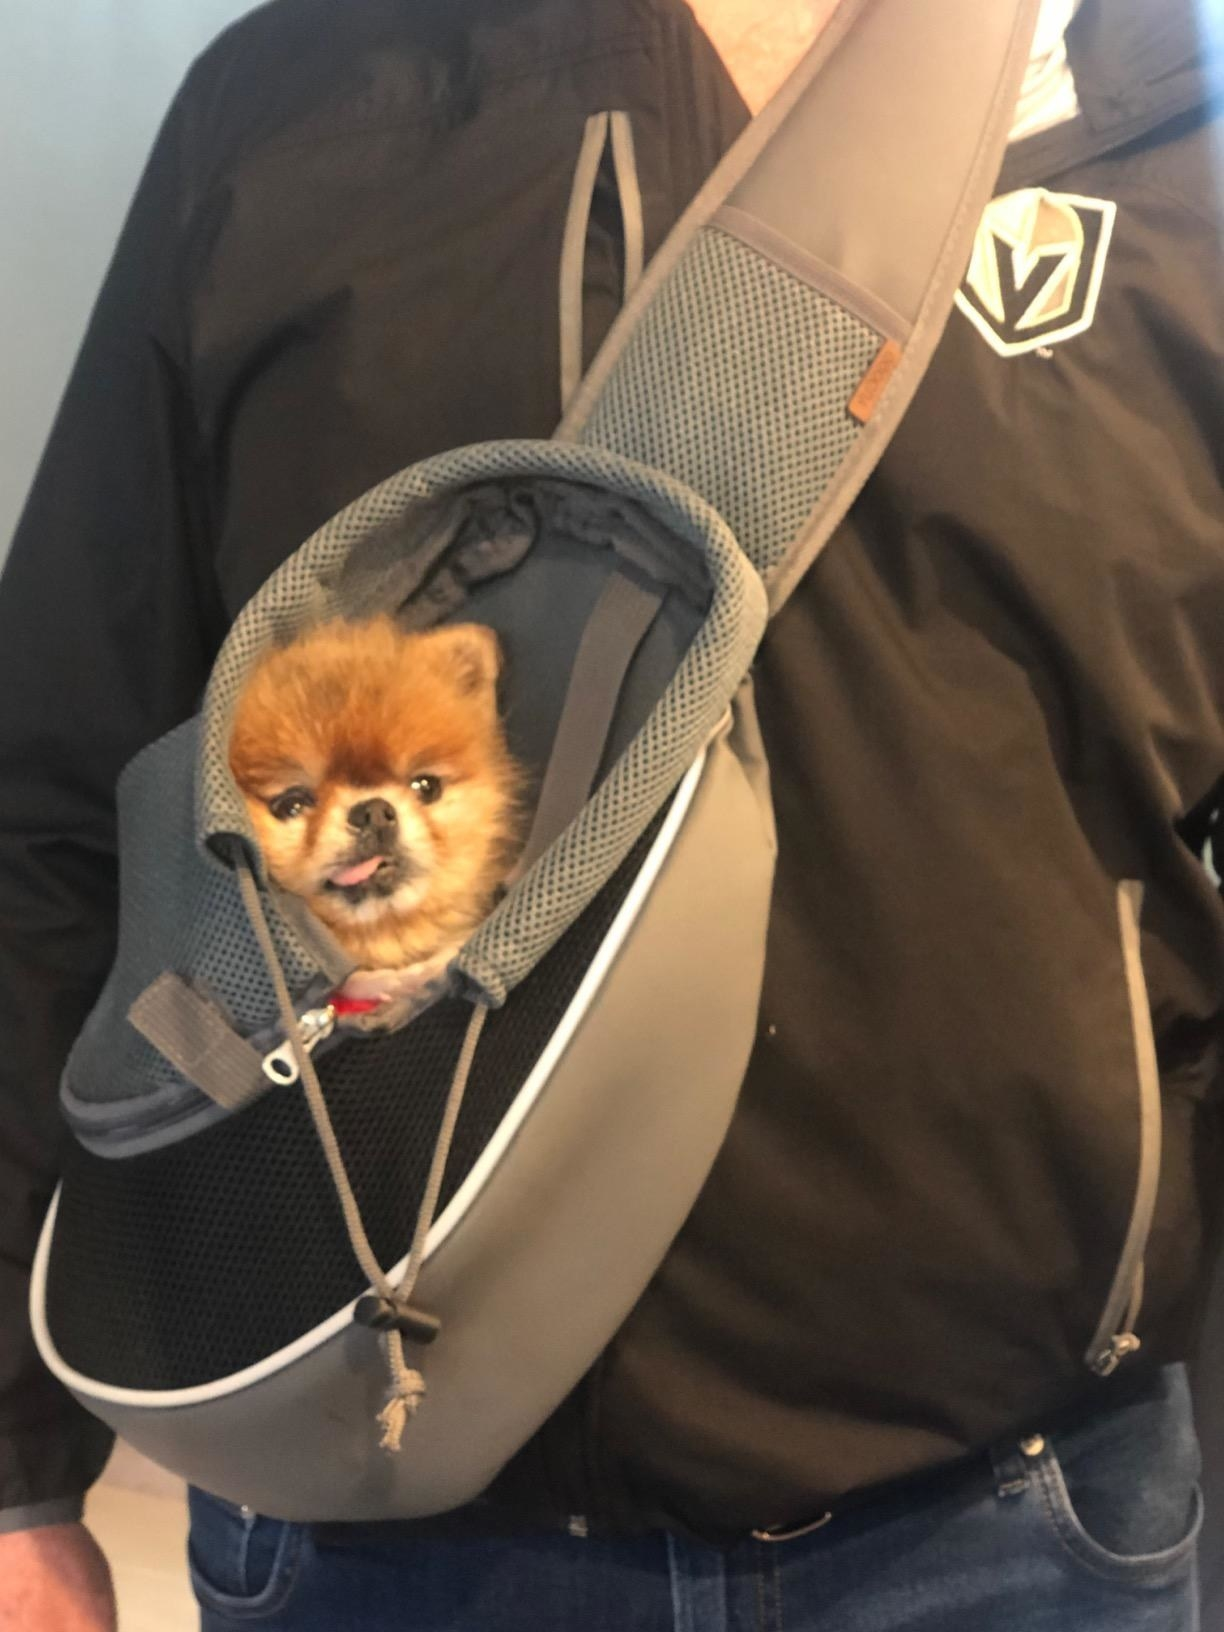 A reviewer's photo of a black and gray shoulder sling bad with a tan Pomeranian sticking its tongue out